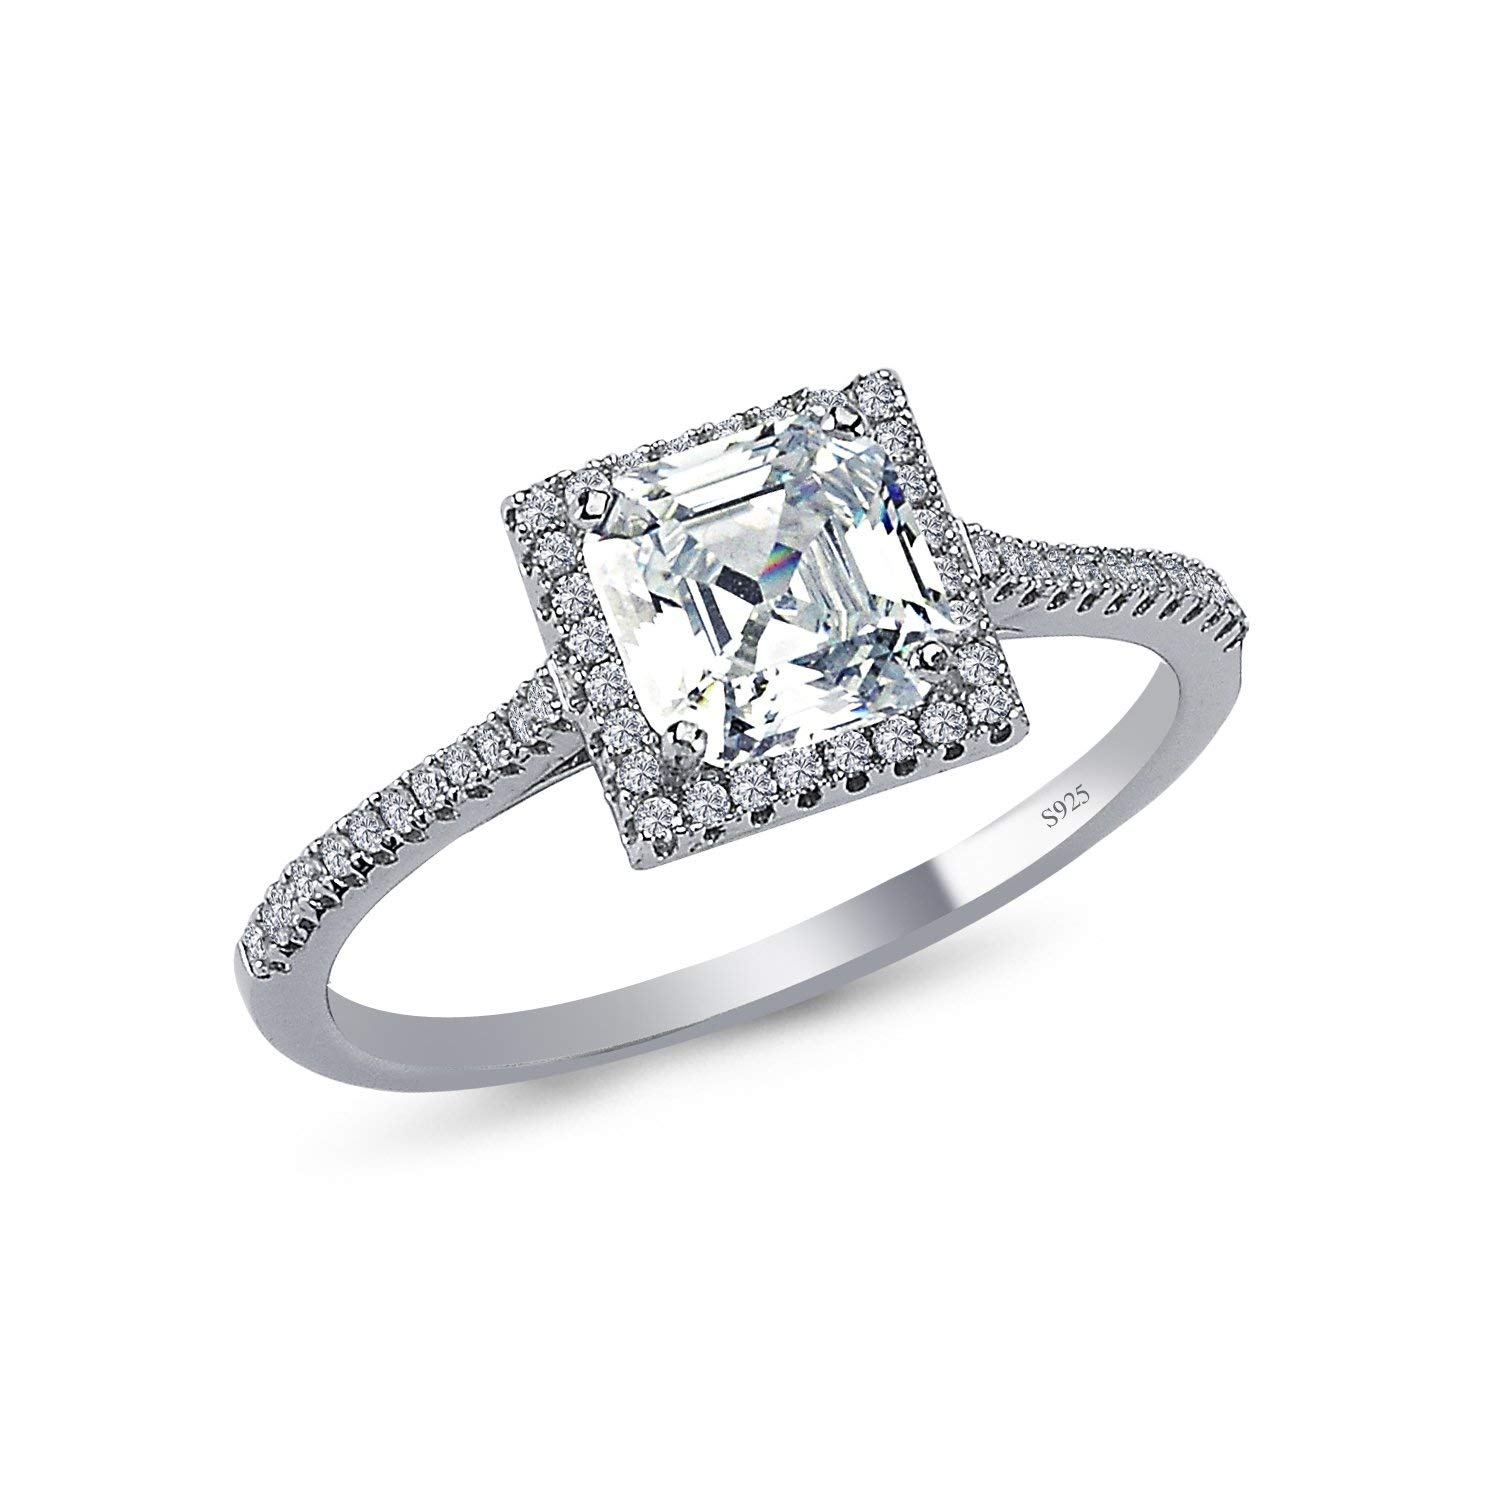 aa4822478 Get Quotations · 925 Solid Sterling Silver 9MM Cushion Halo AAAAA+ Gem  Grade Quality ASSCHER Cut Total 2 CARAT